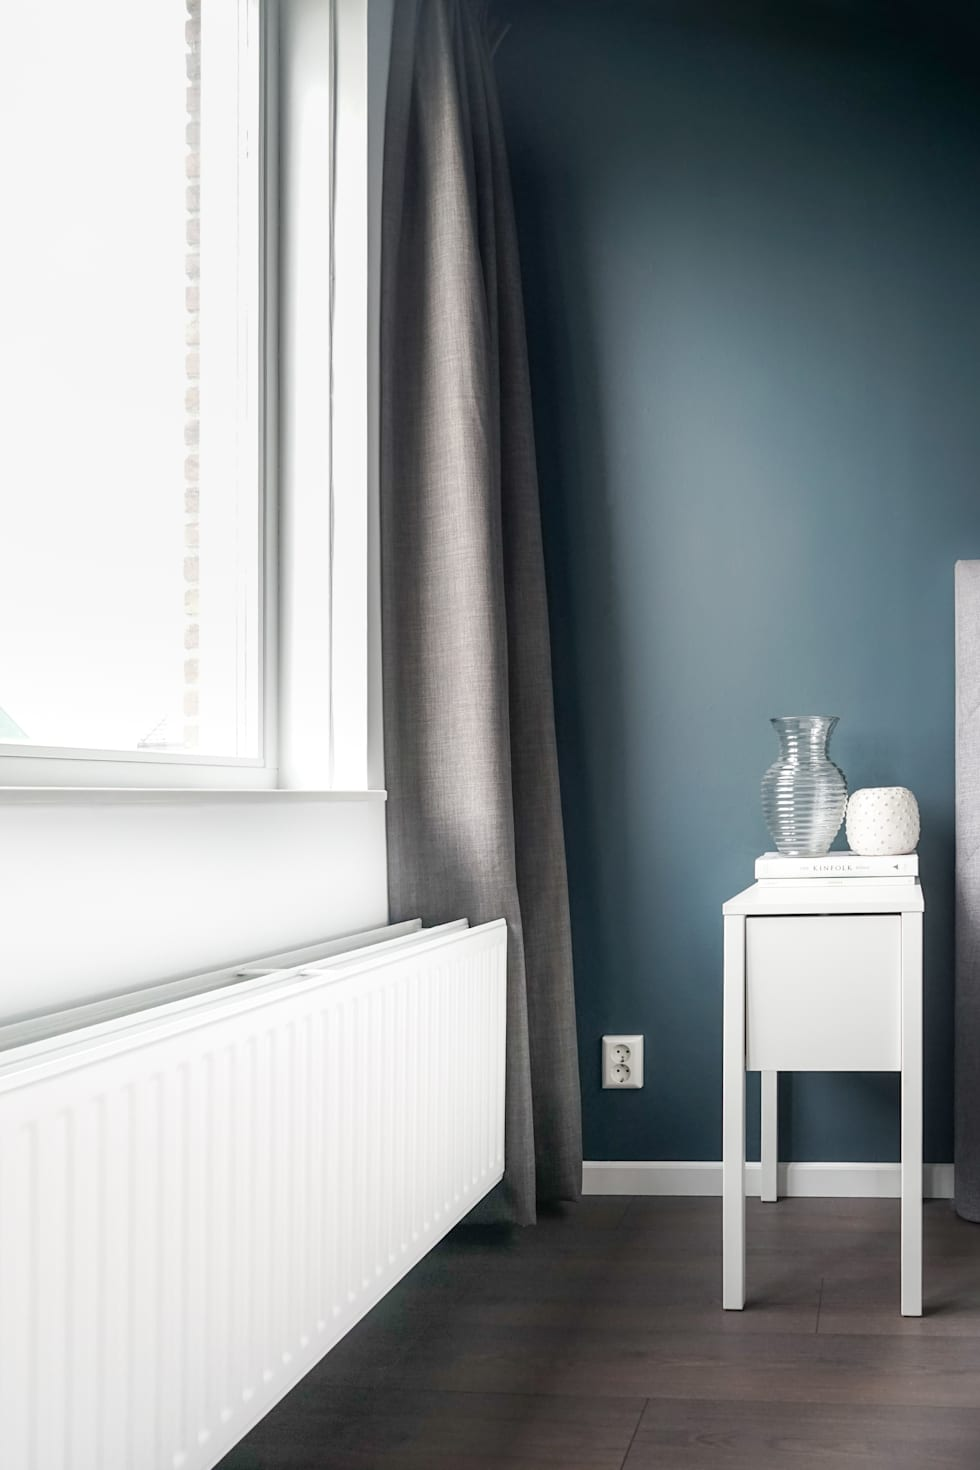 https://images.homify.com/c_fill,f_auto,q_auto:eco,w_980/v1505475802/p/photo/image/2229962/blog_bymuk_Licetto_Muk_van_Lil_plafond_radiator_Silk_White_slaapkamer_Steel_Blue_traditioanl_paint-10.jpg